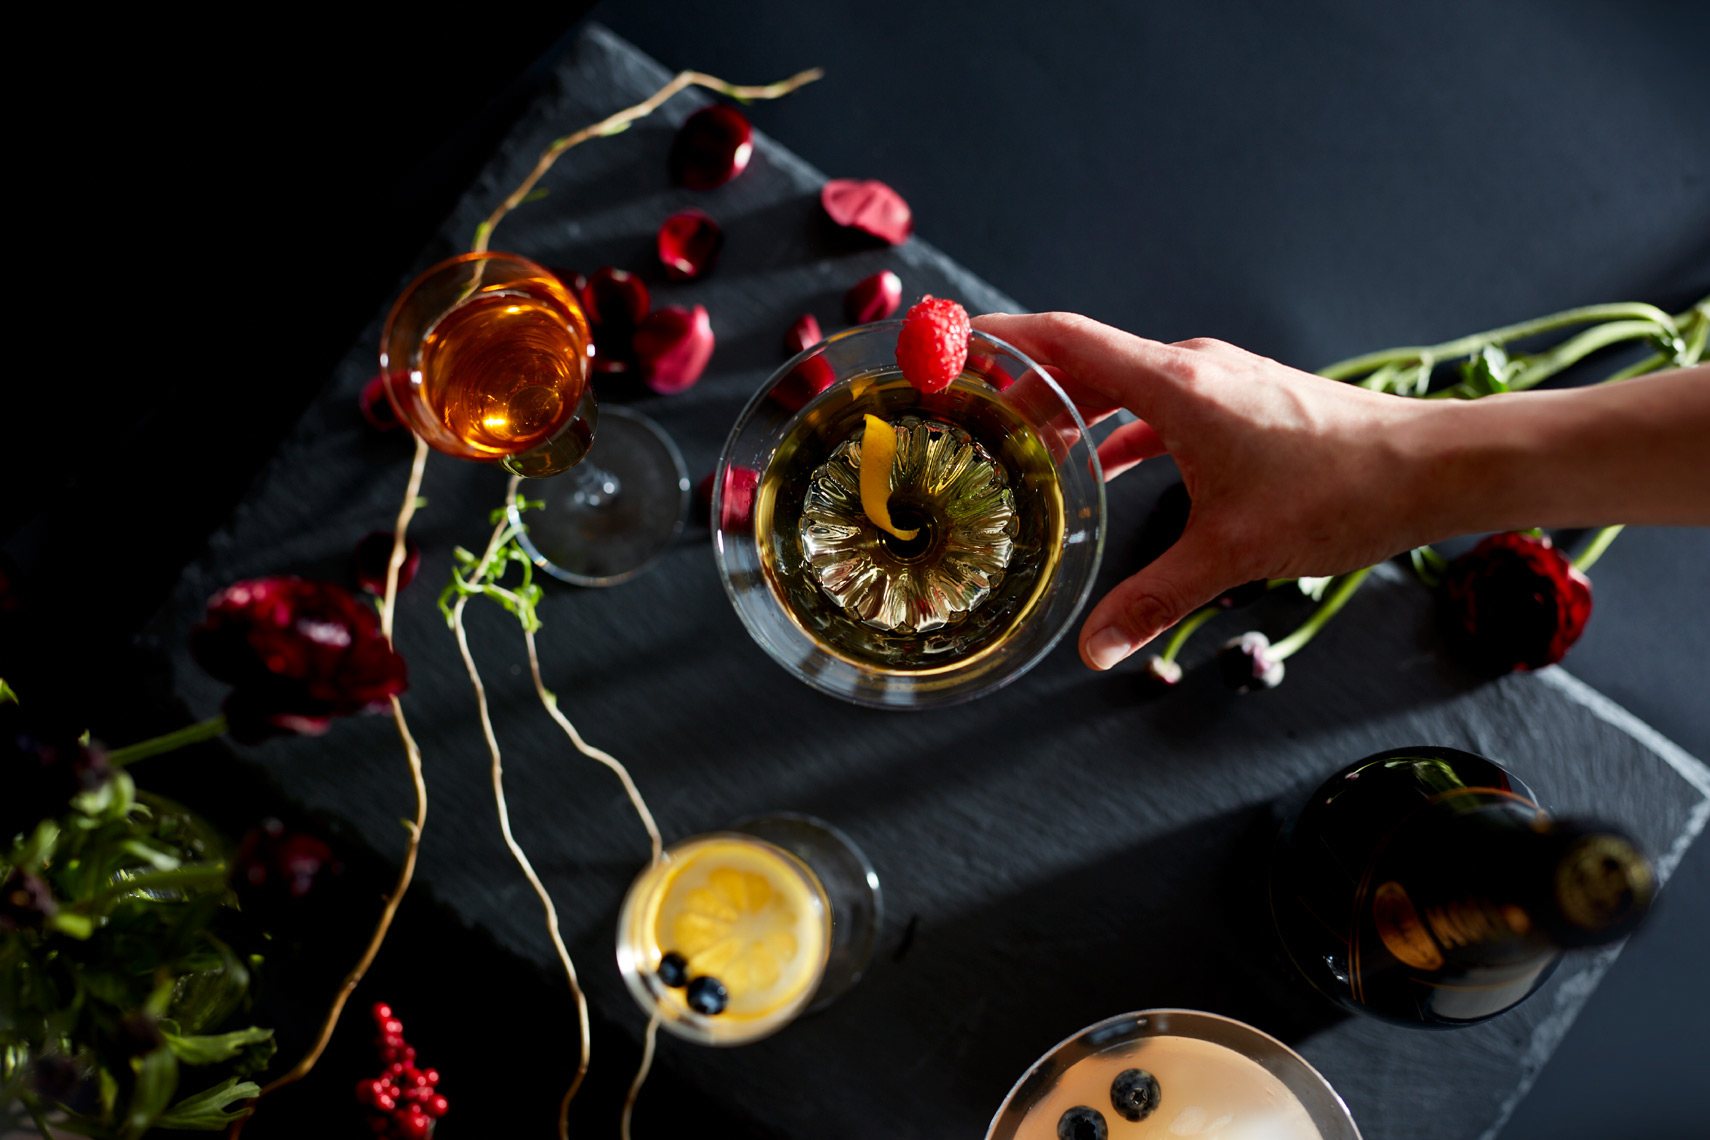 downward view of woman picking up martini with a twist and fresh fruit on clean black surface